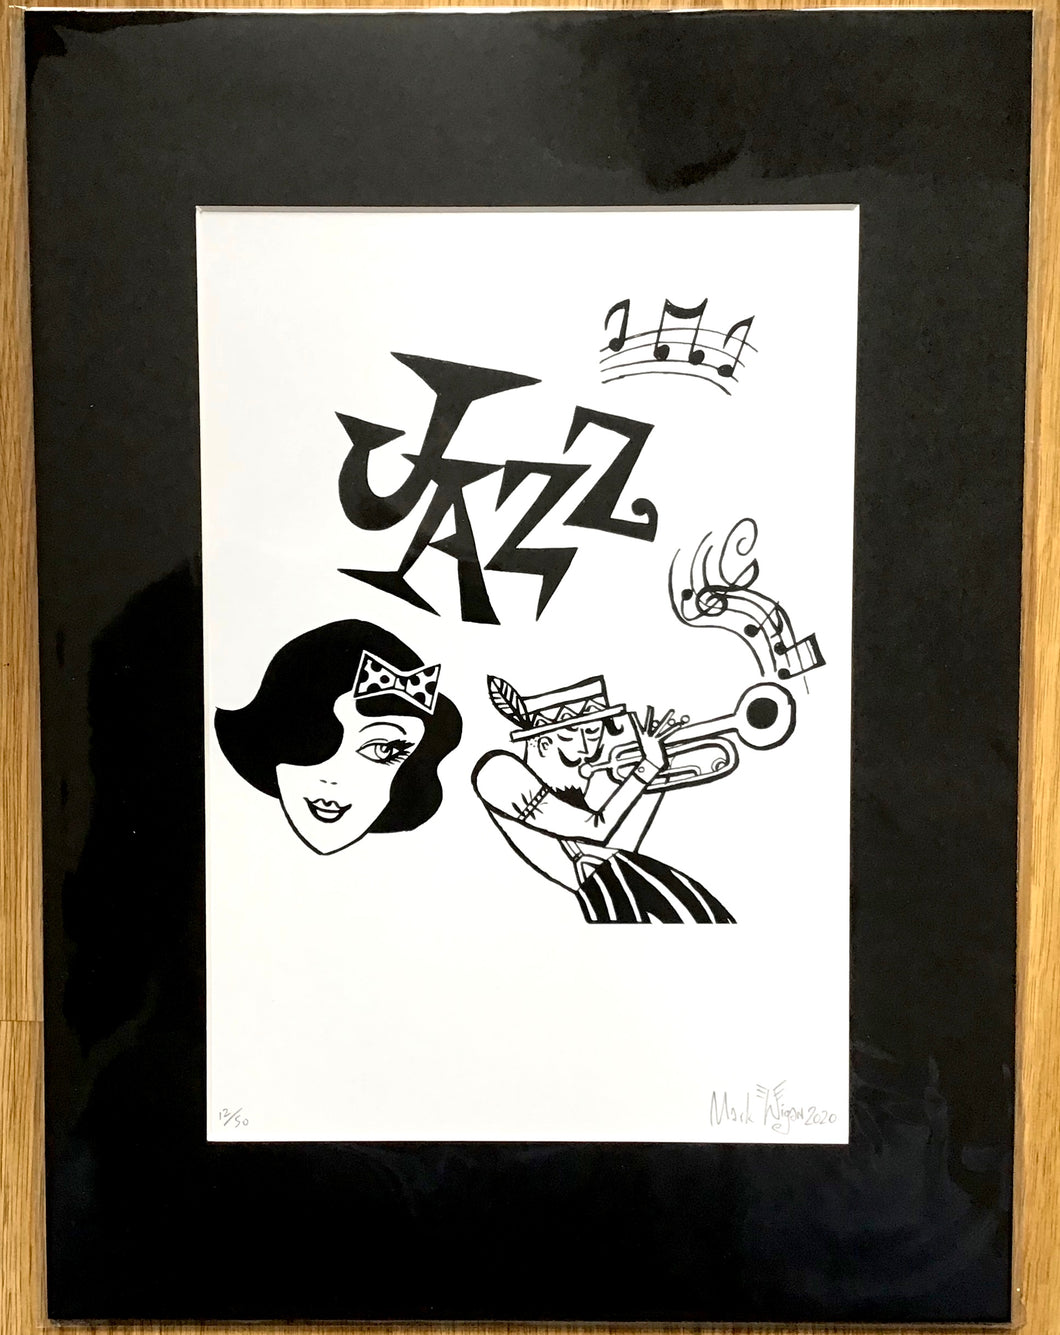 Paris Jazz signed print